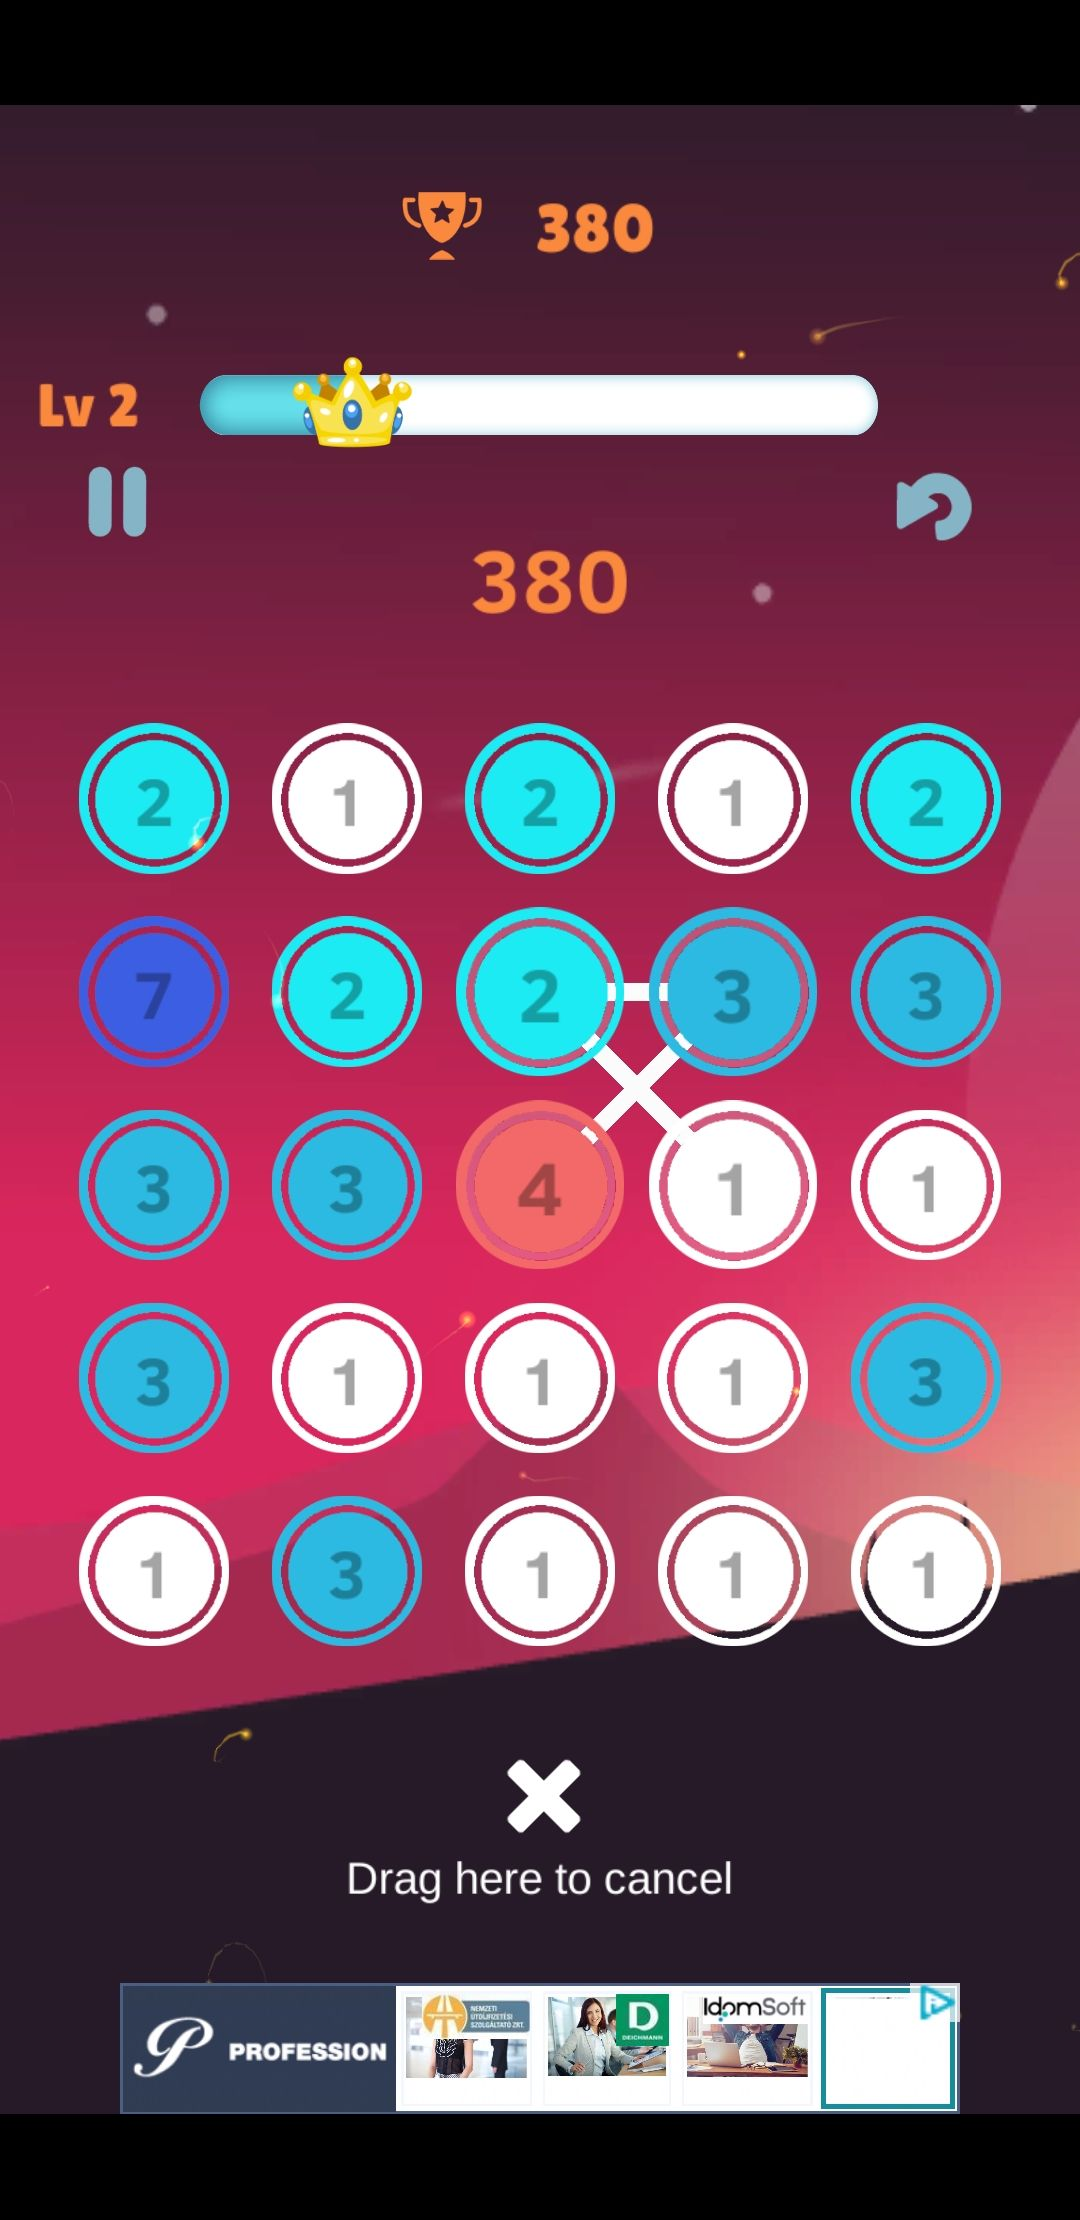 Make it 13 - Puzzle Game Unity Screenshot 4